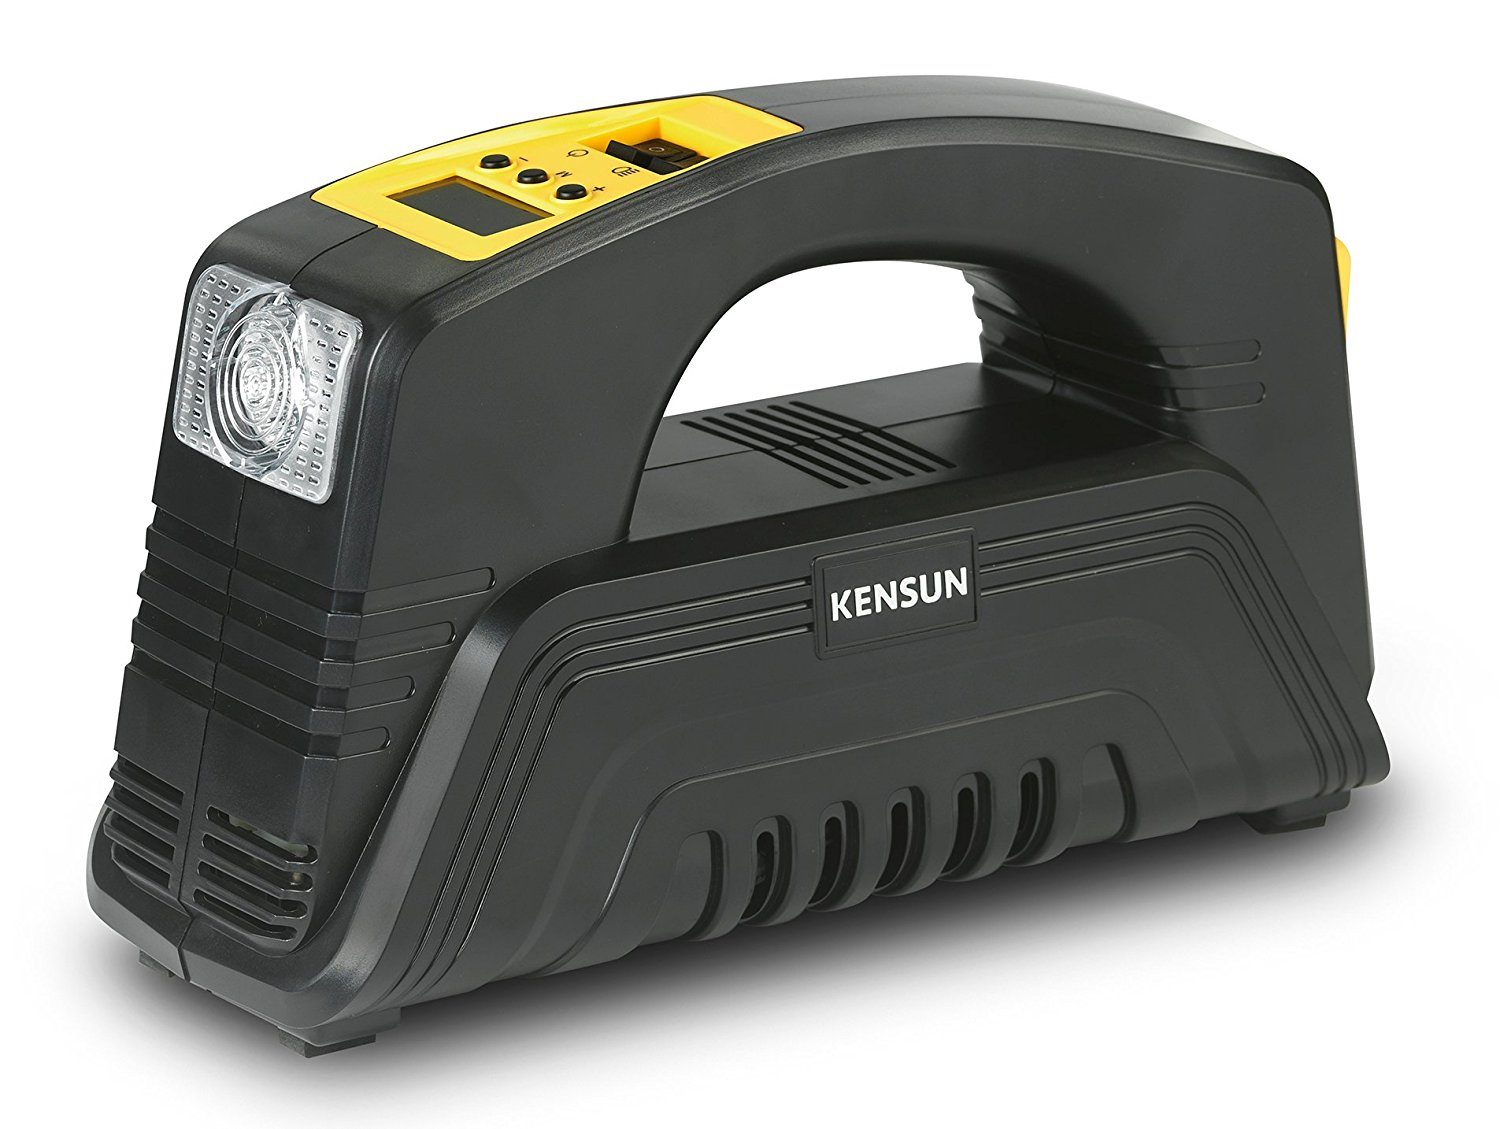 Kensun Model J Air Compressor